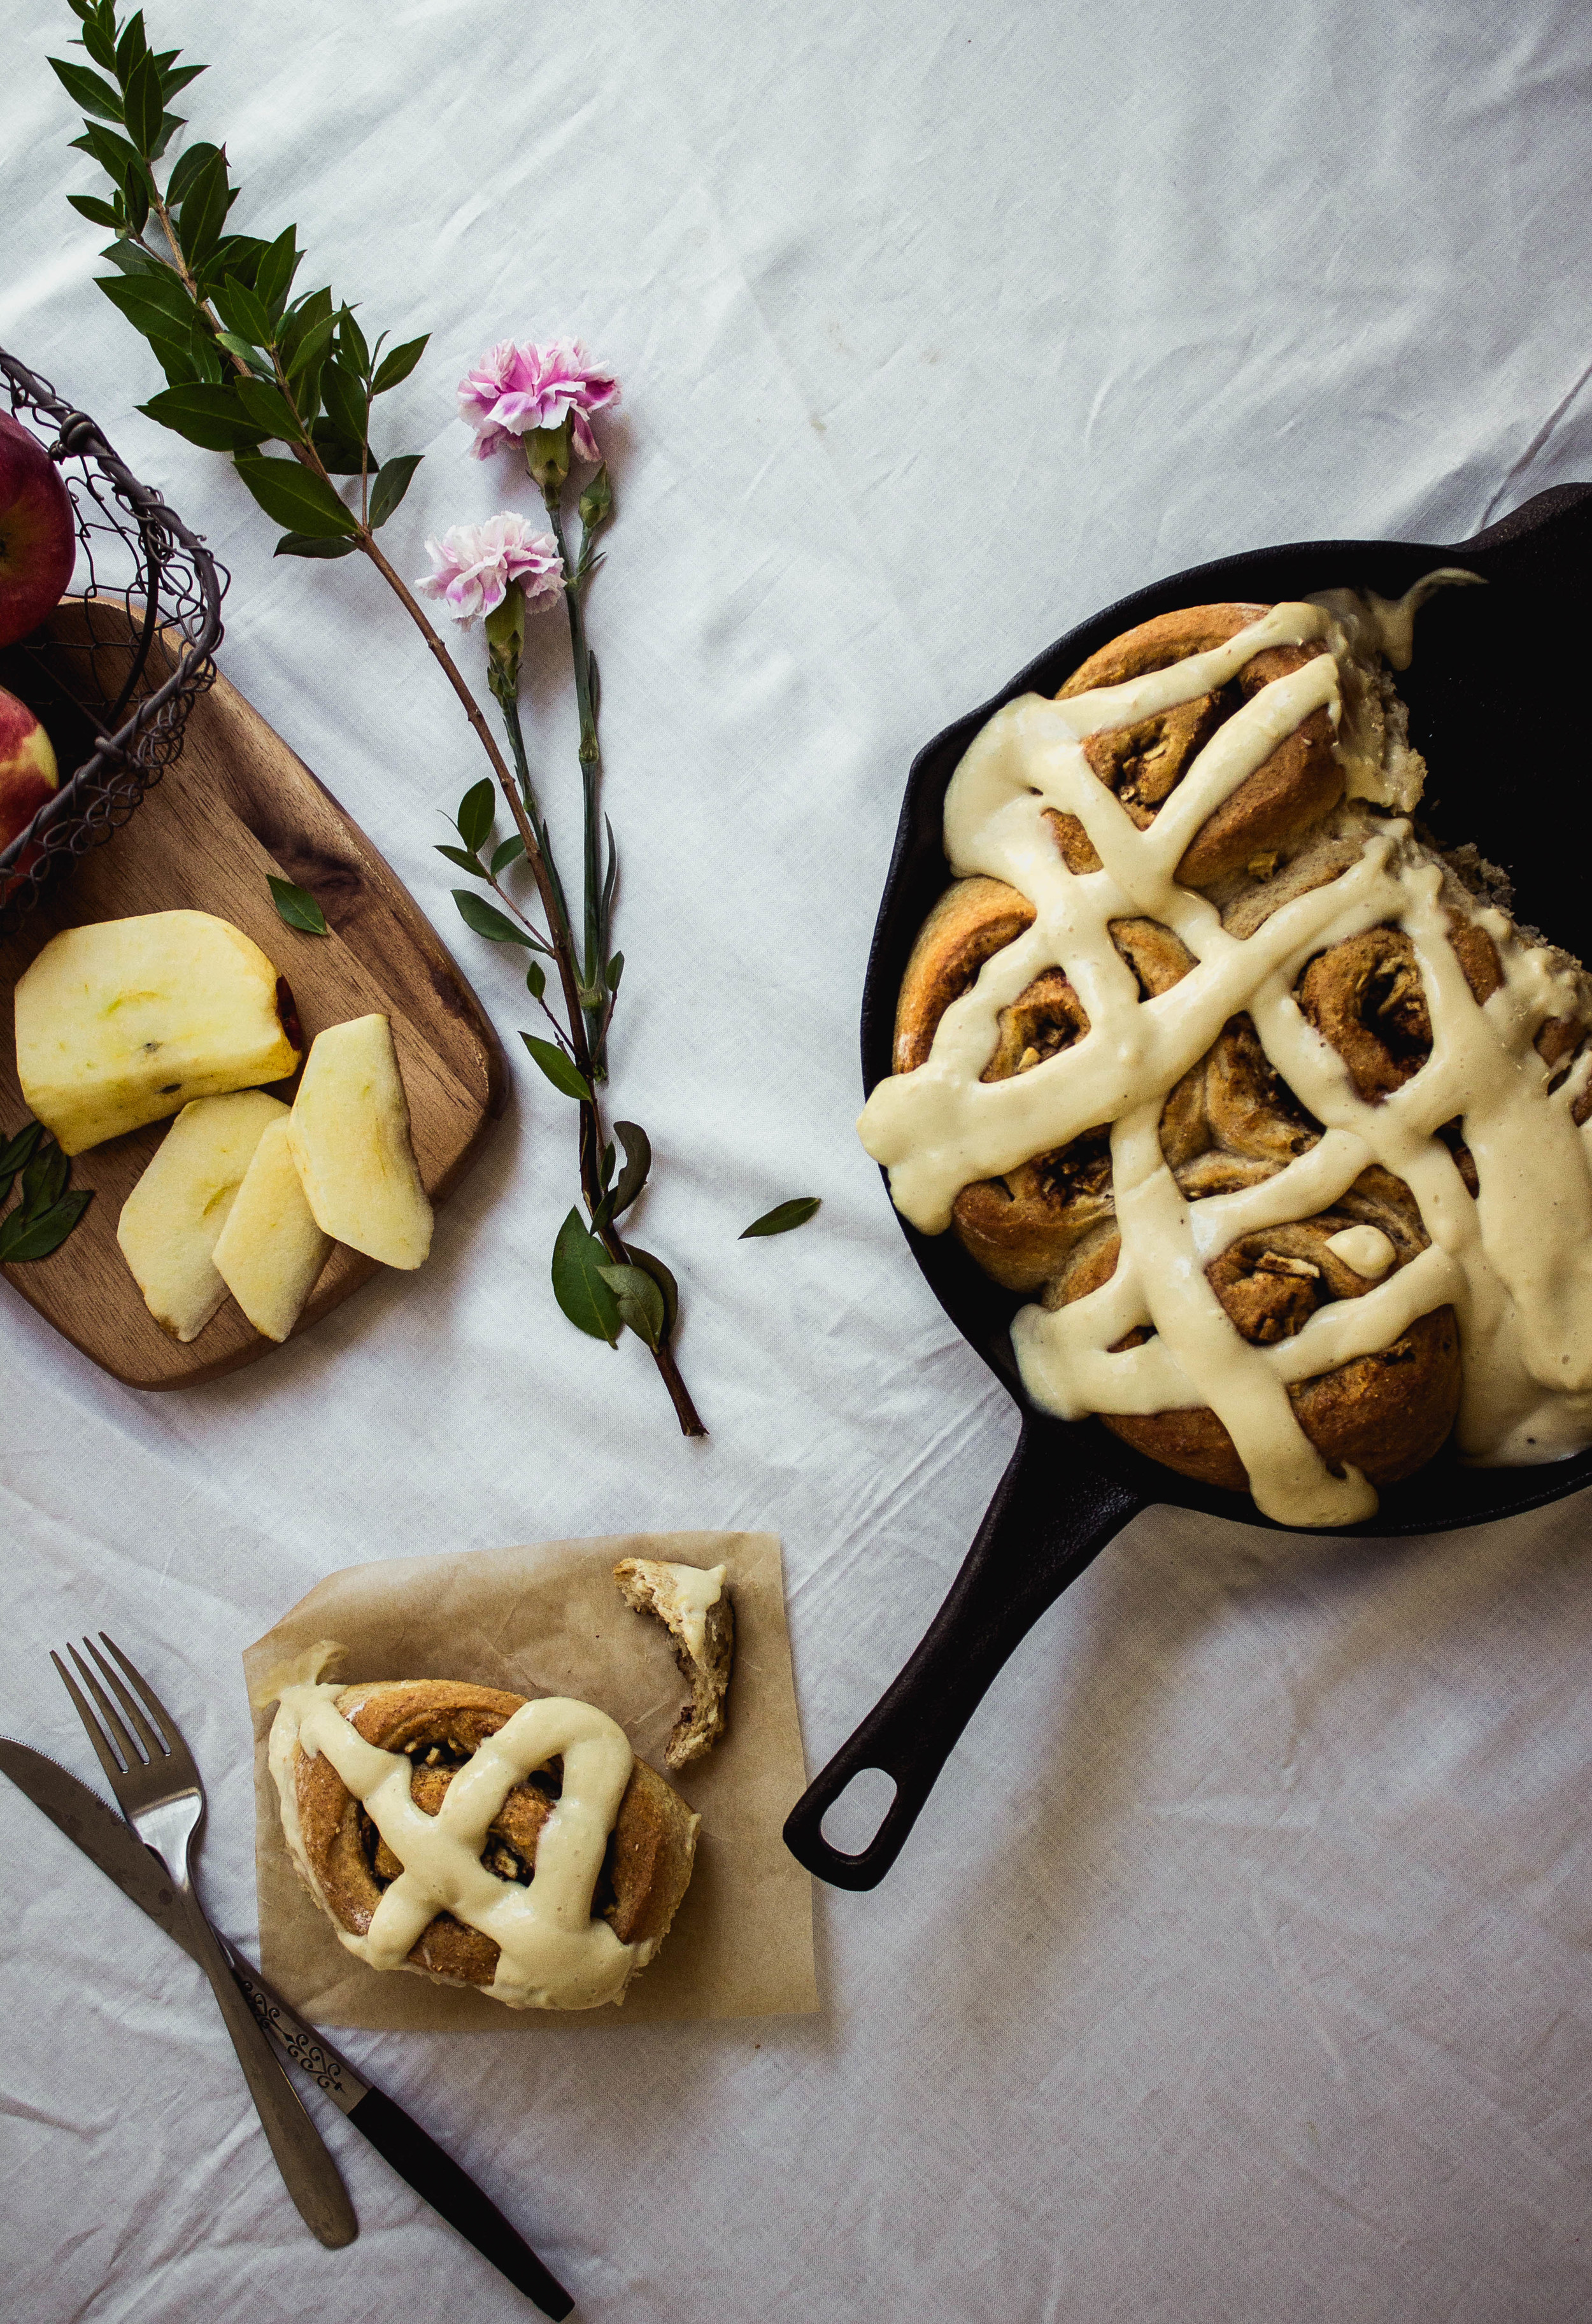 Apple wheat cinnamon rolls with pastry icing | fit for the soul.com